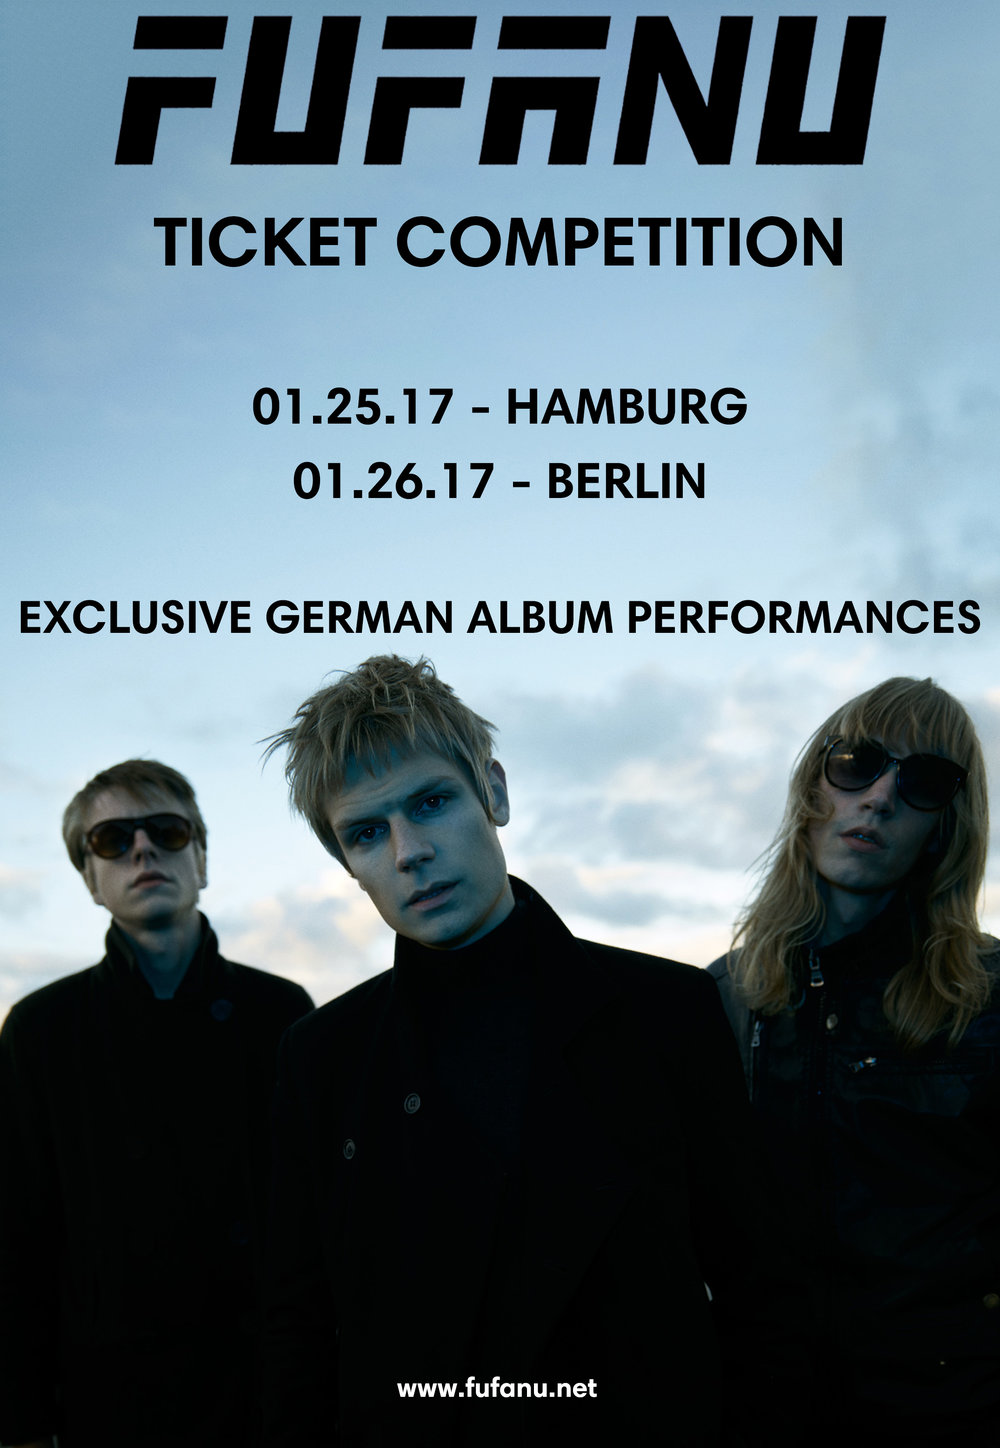 Fufanu-GermanyShowcases Poster-TicketComp.jpg